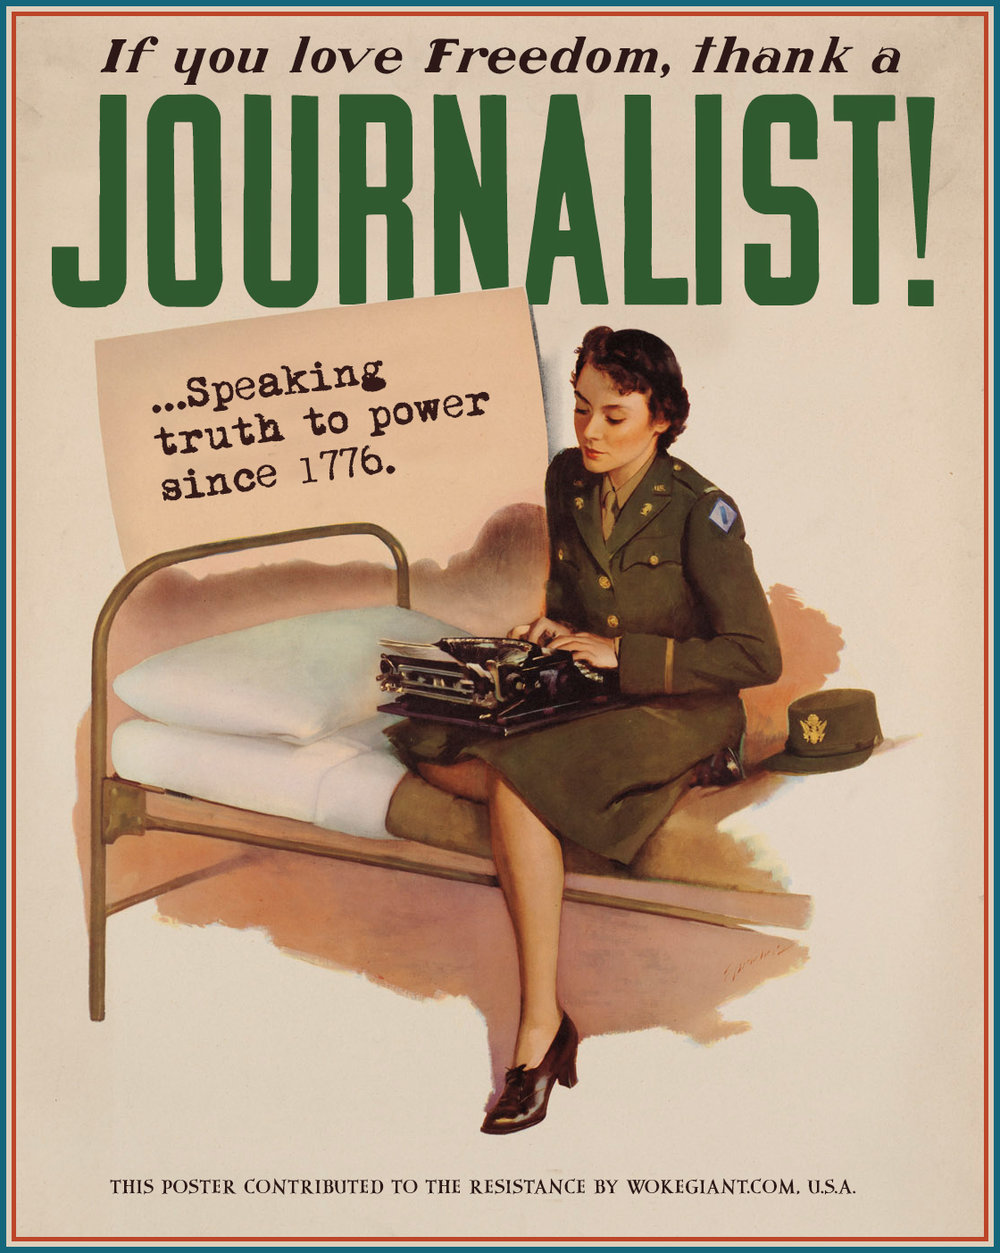 Thank a Journalist!